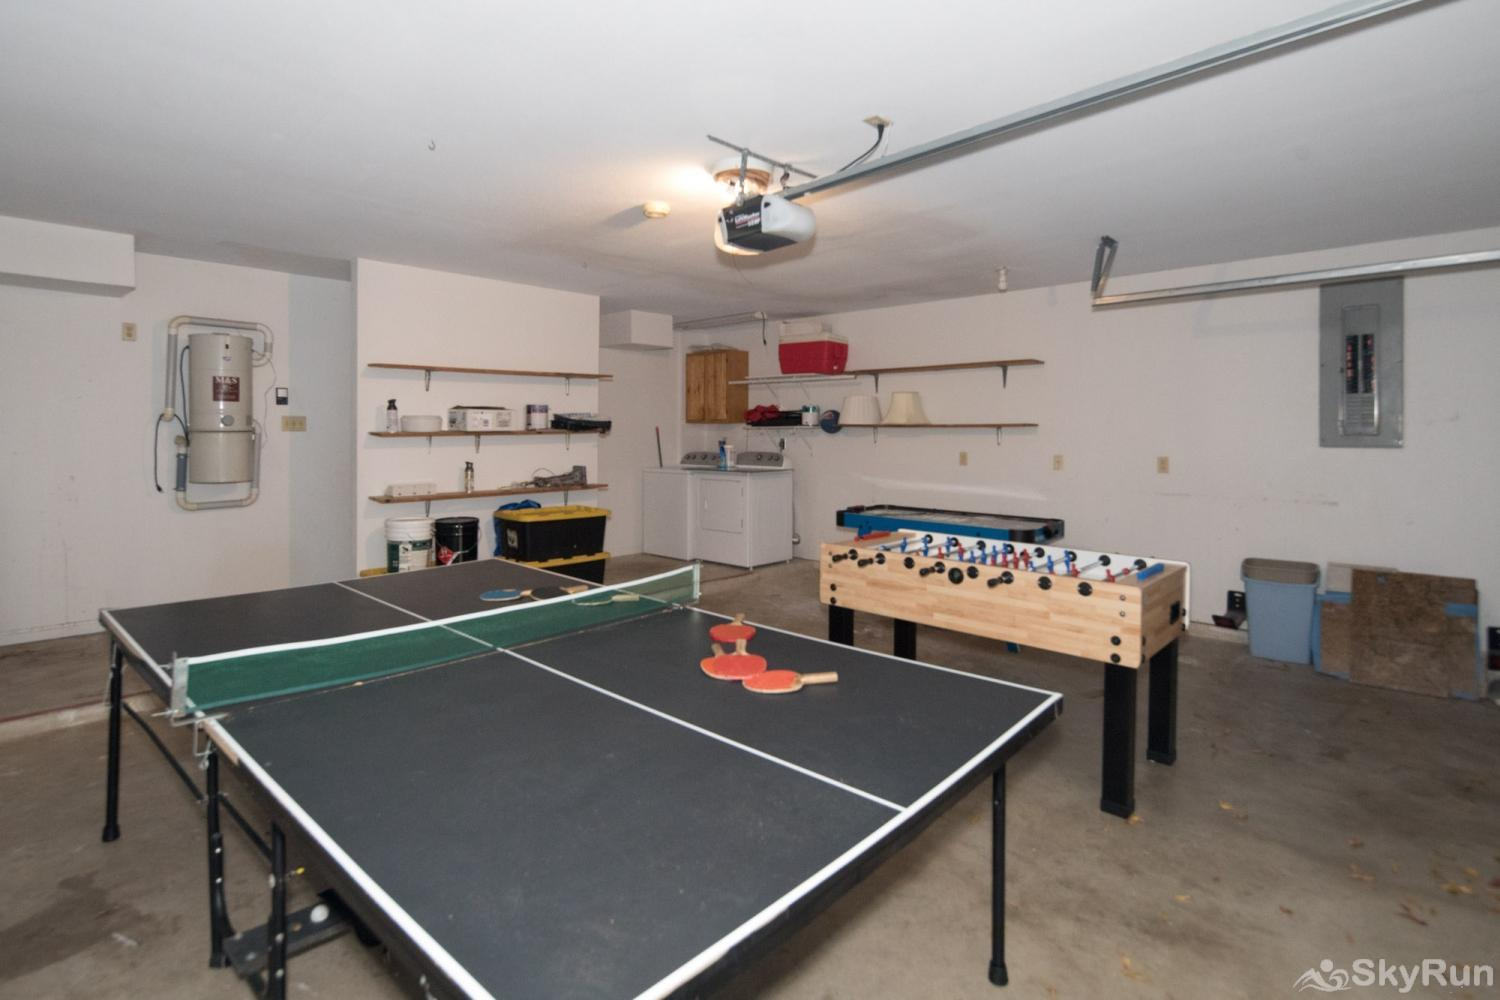 WATER'S EDGE RETREAT Garage space with foosball and ping pong tables